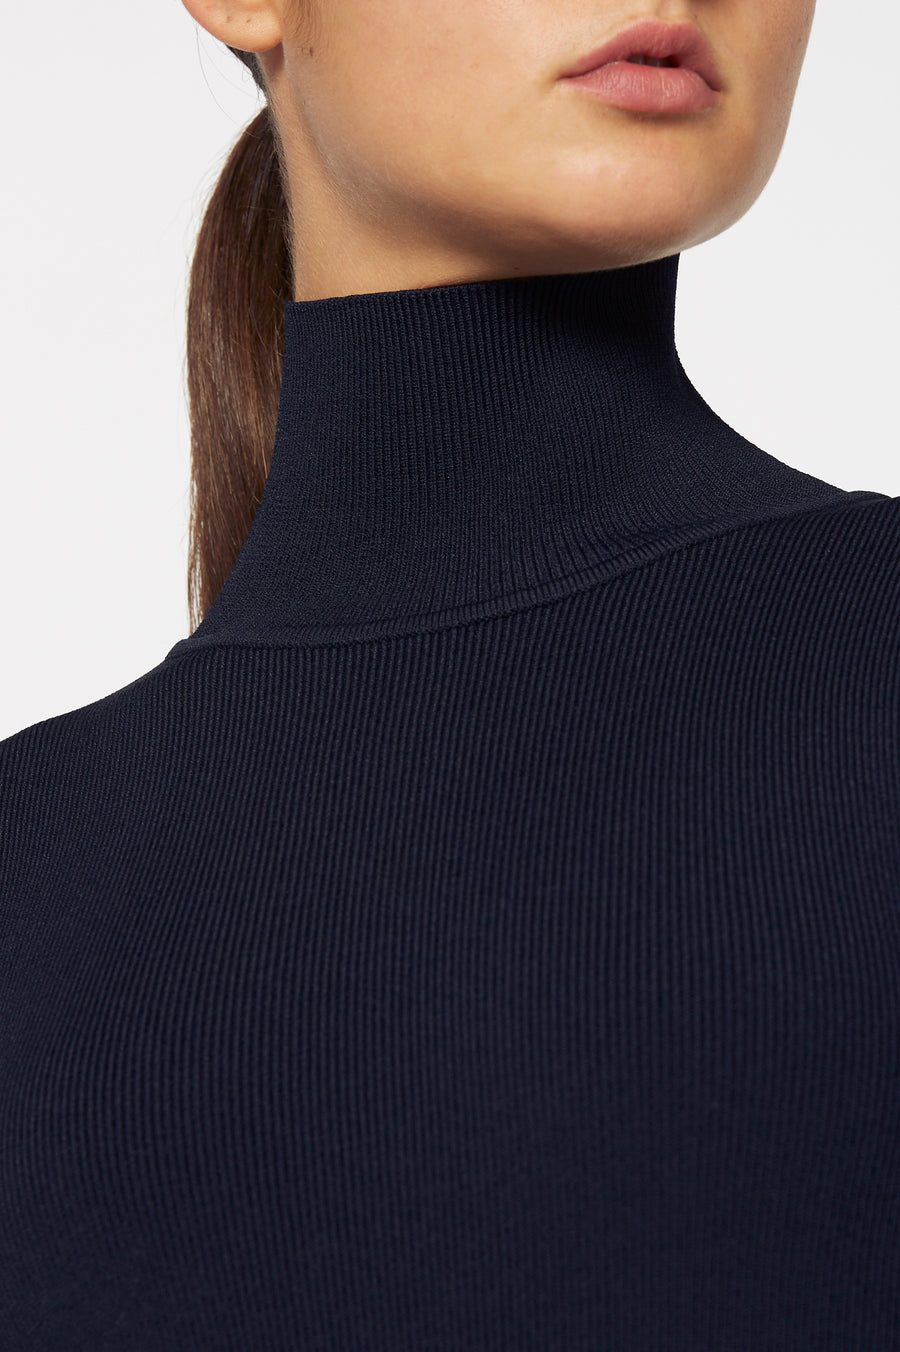 Crepe Knit Panel Dress, high neck, mid-length sleeves, draped panel hem, falls just below knee, belt in same material included, color navy